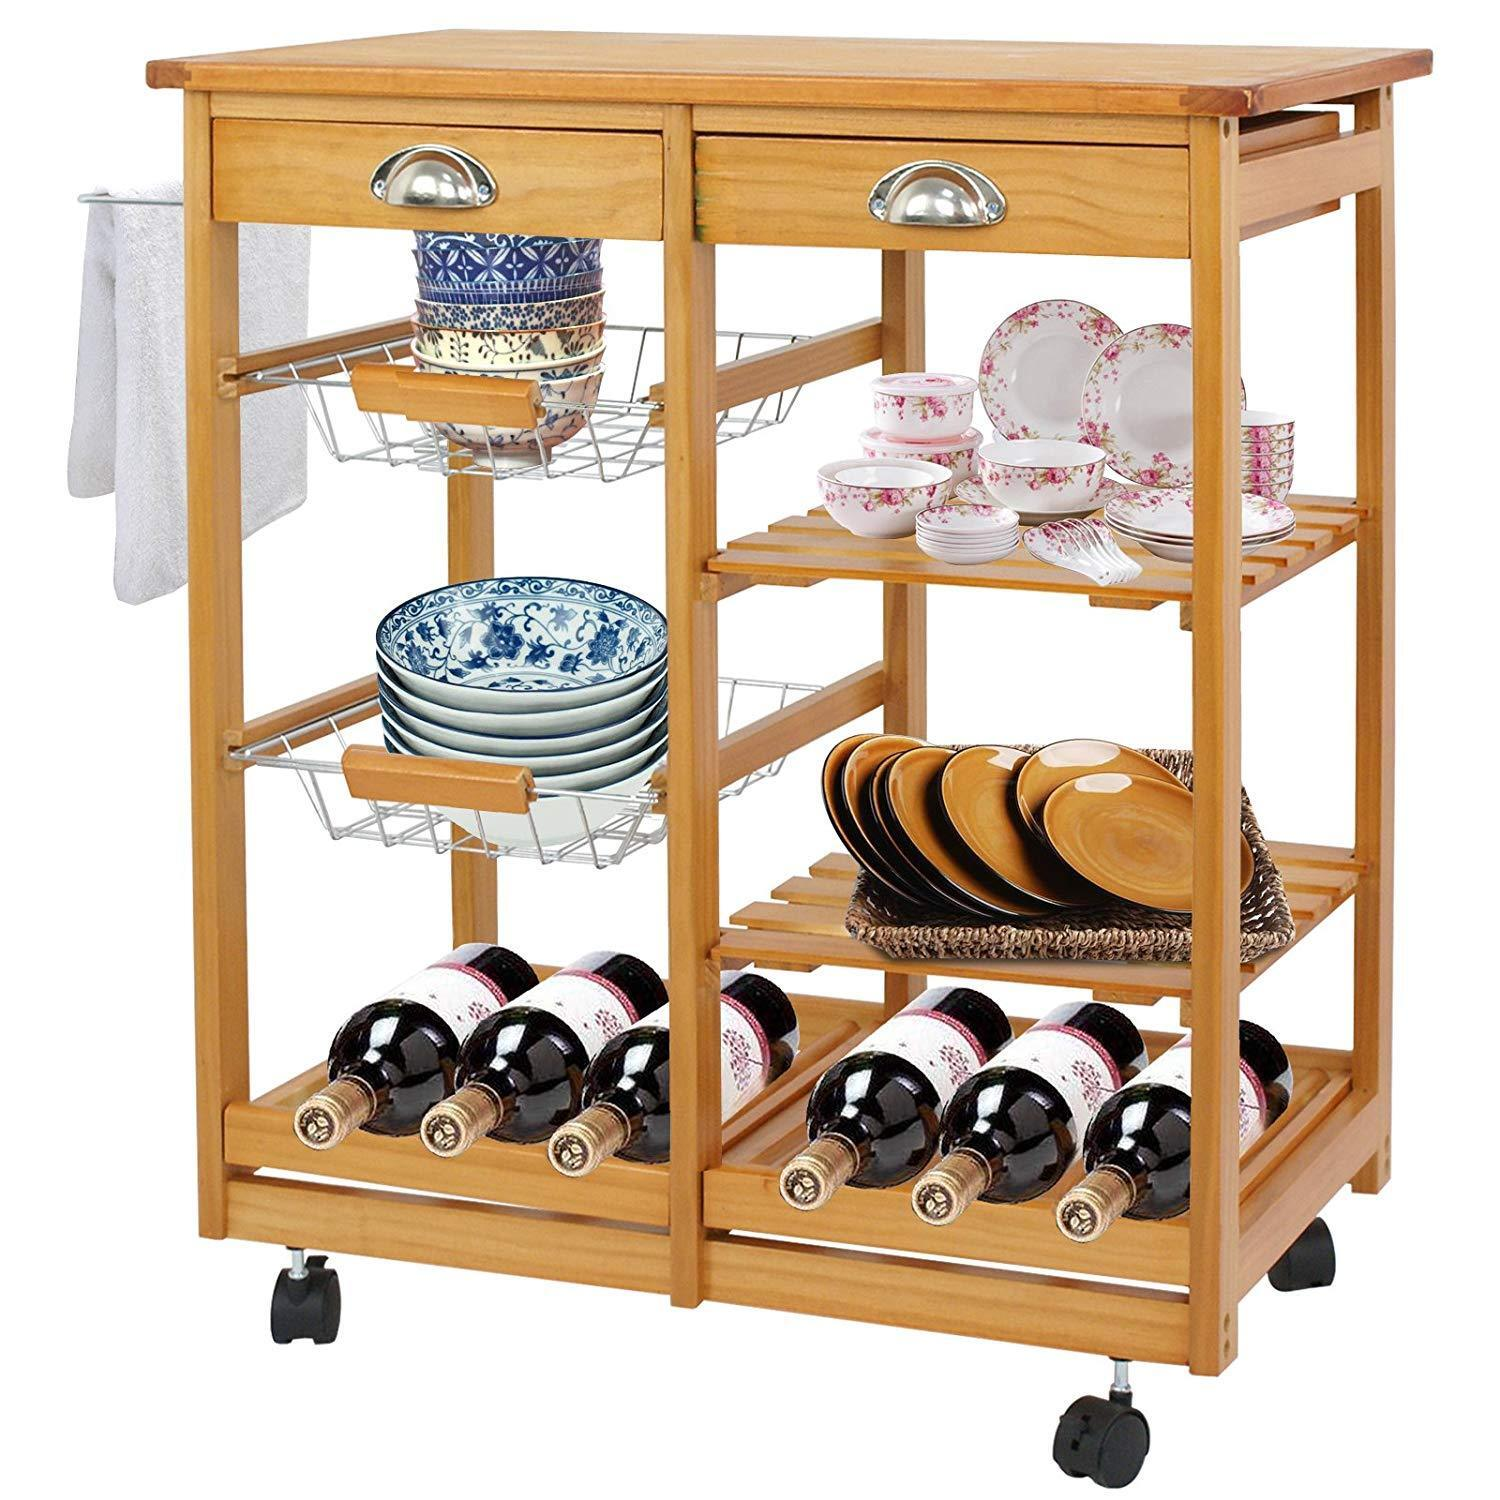 Wood Kitchen Storage Island Cart Dining Trolley Basket Stand Counter Top Table Home & Garden